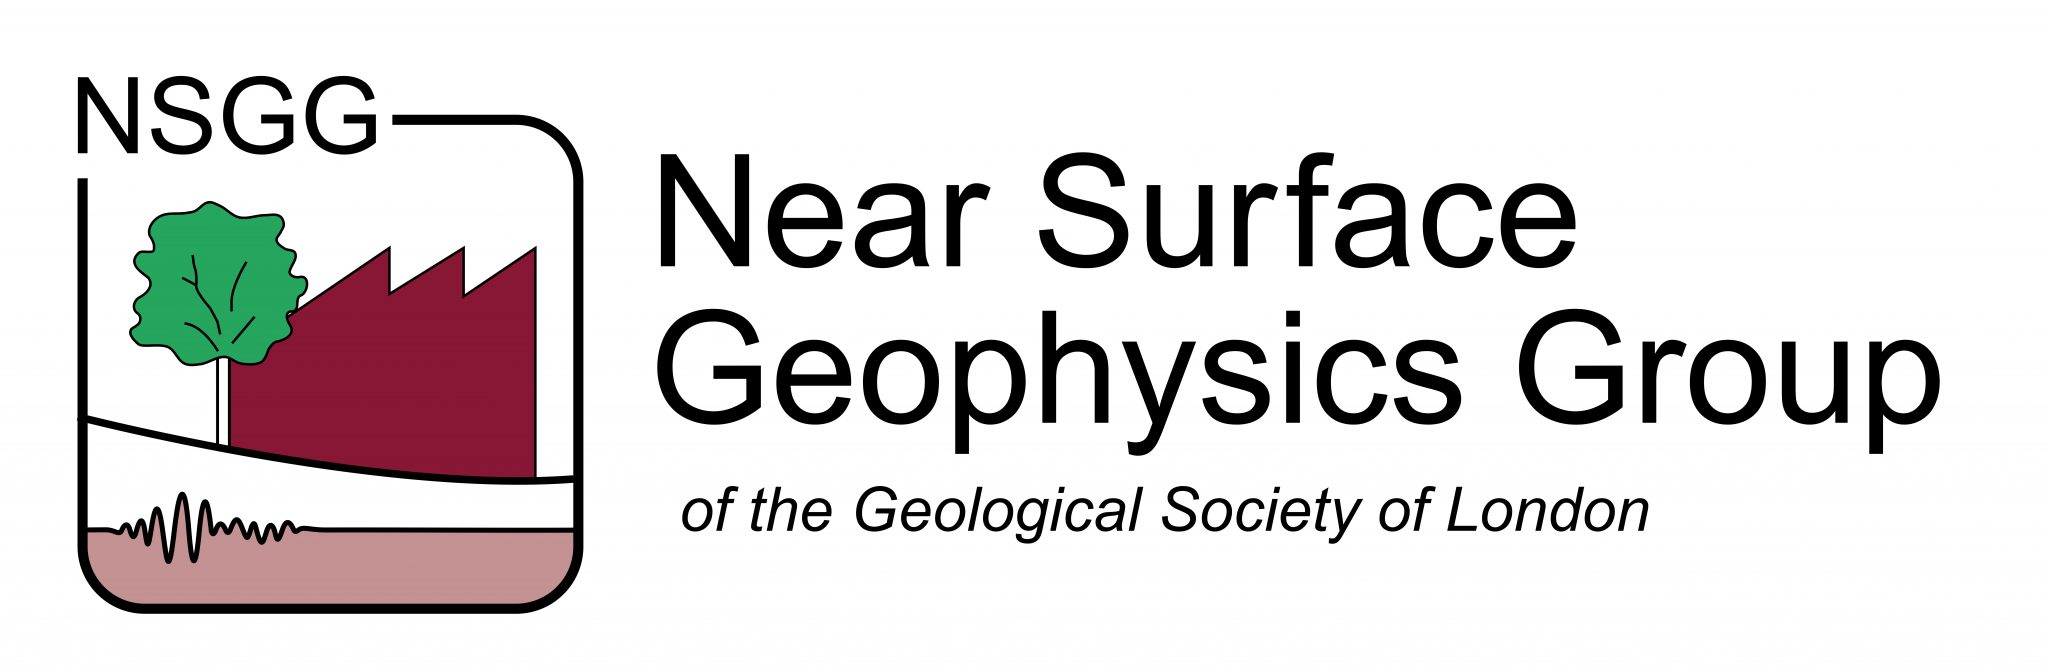 Near Surface Geophysics Group